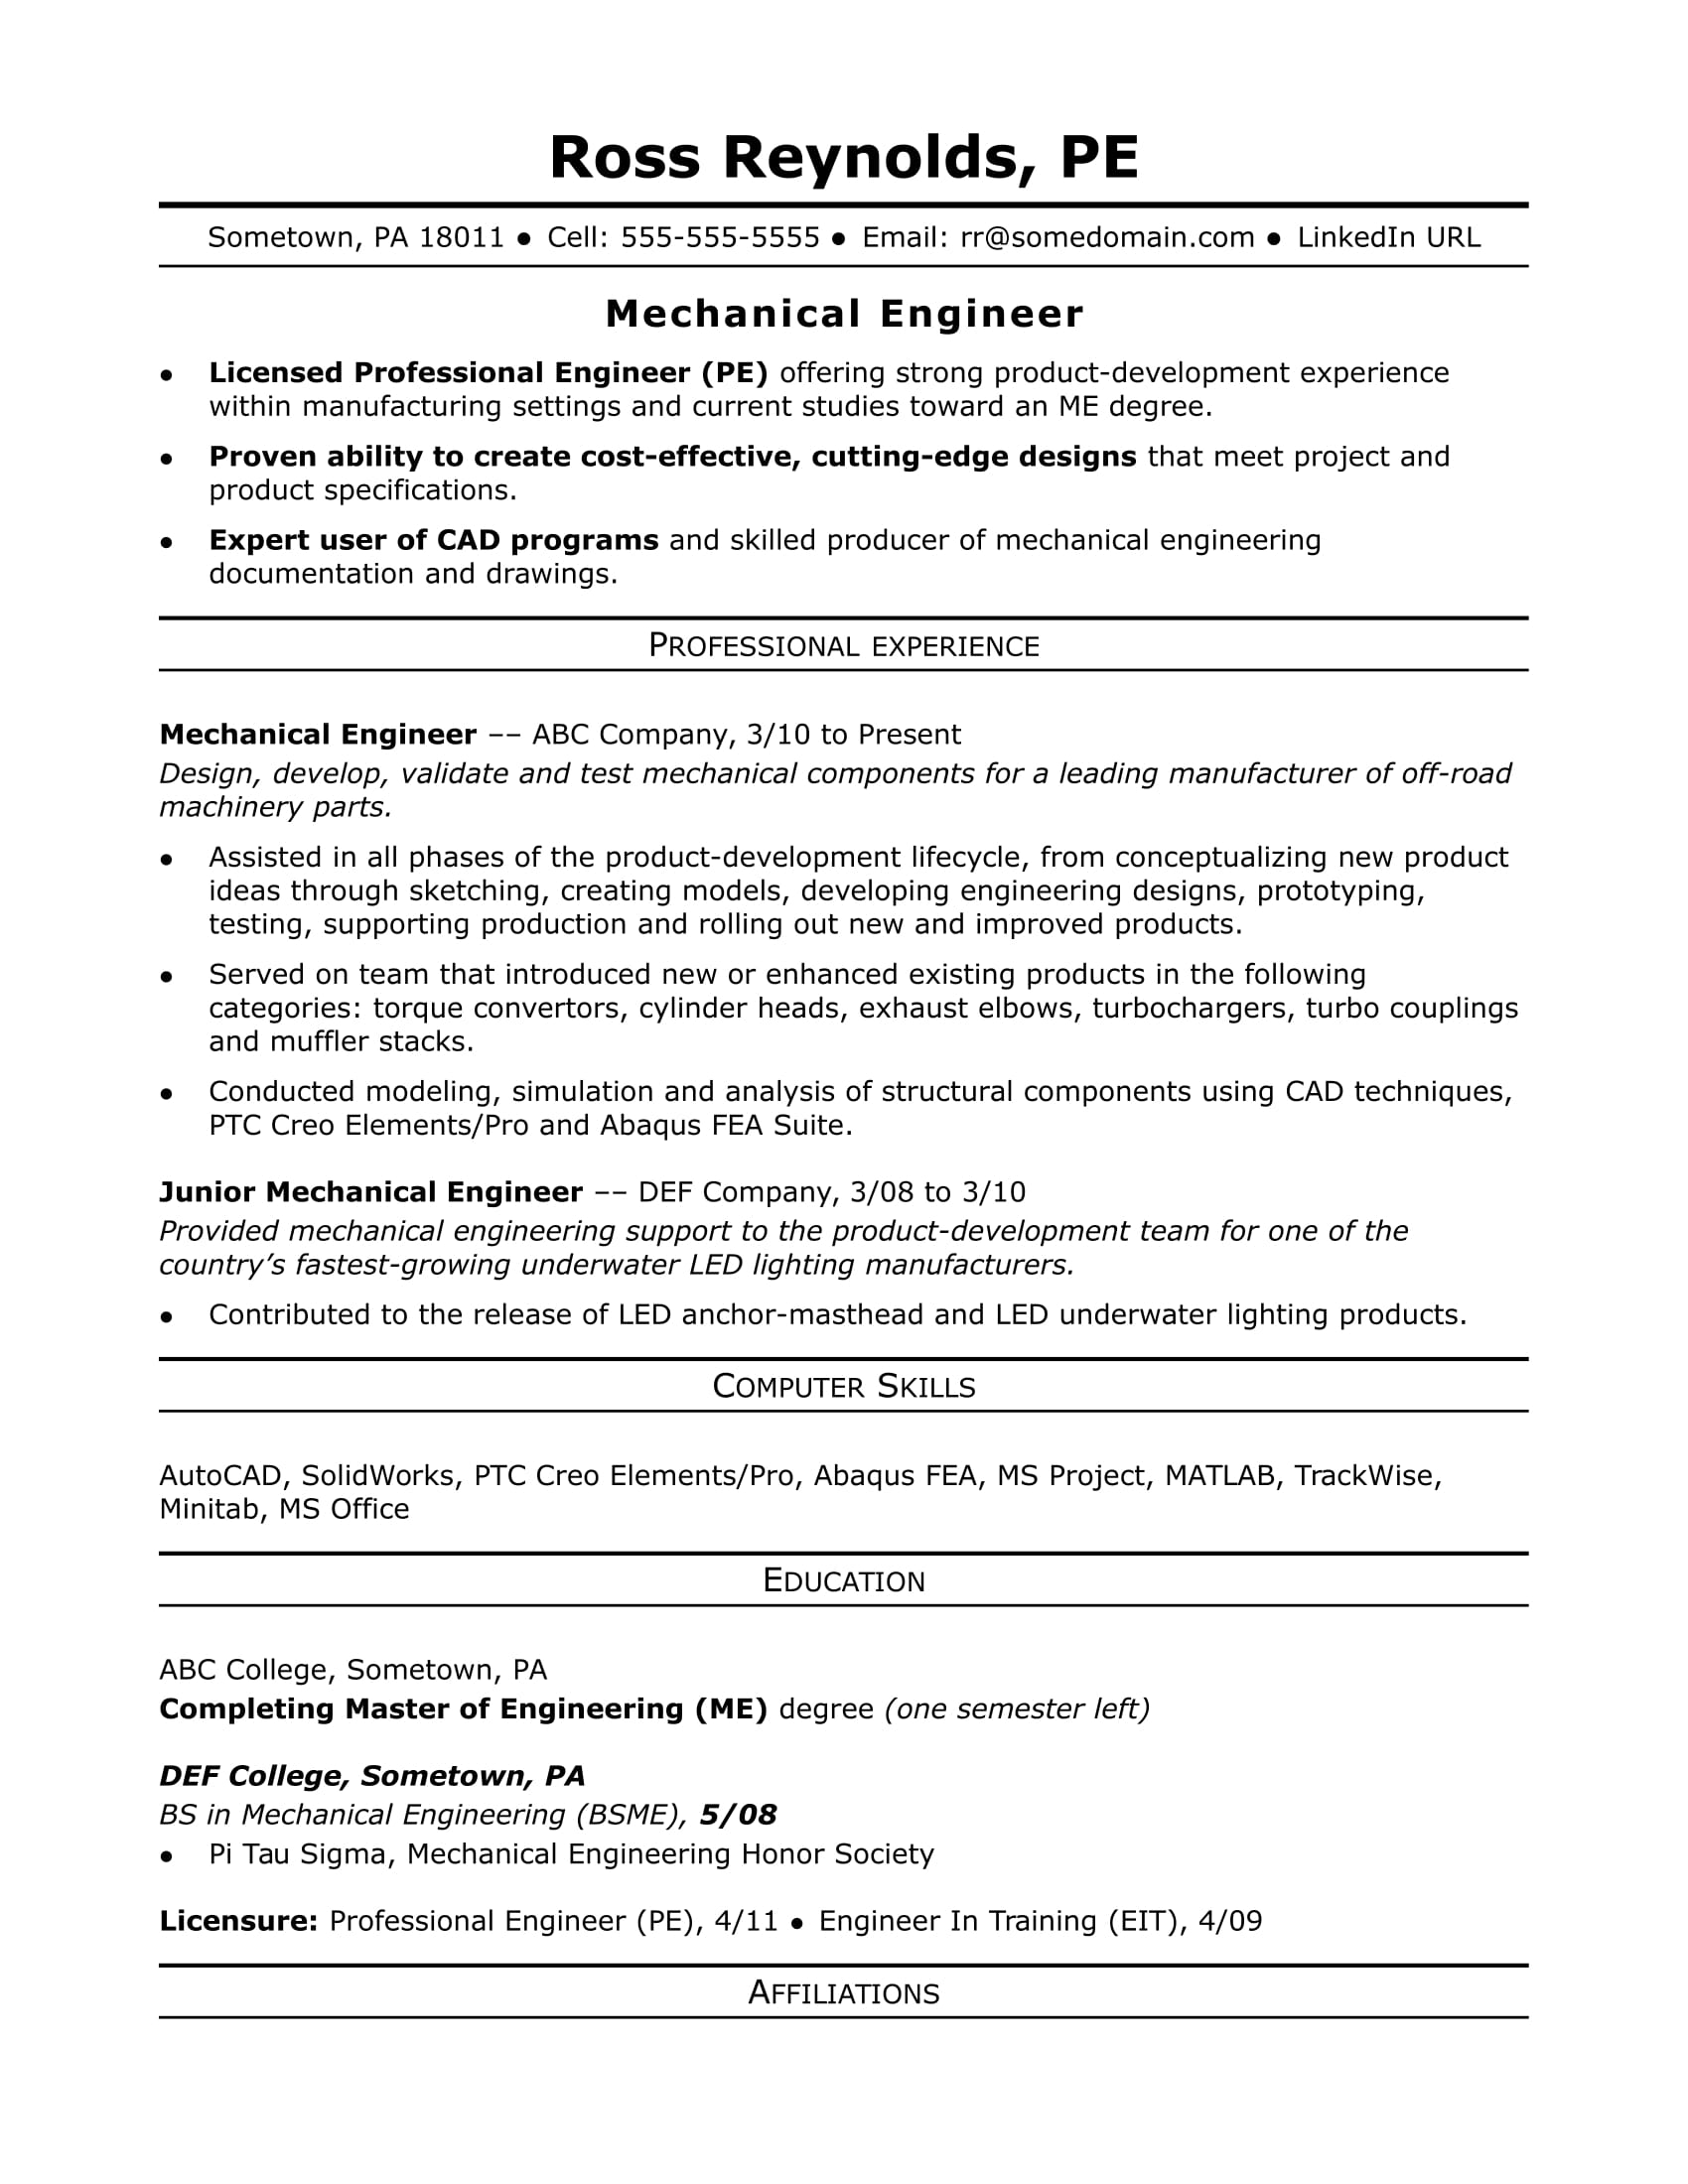 resume 3 Years Experience Resume sample resume for a midlevel mechanical engineer monster com engineer